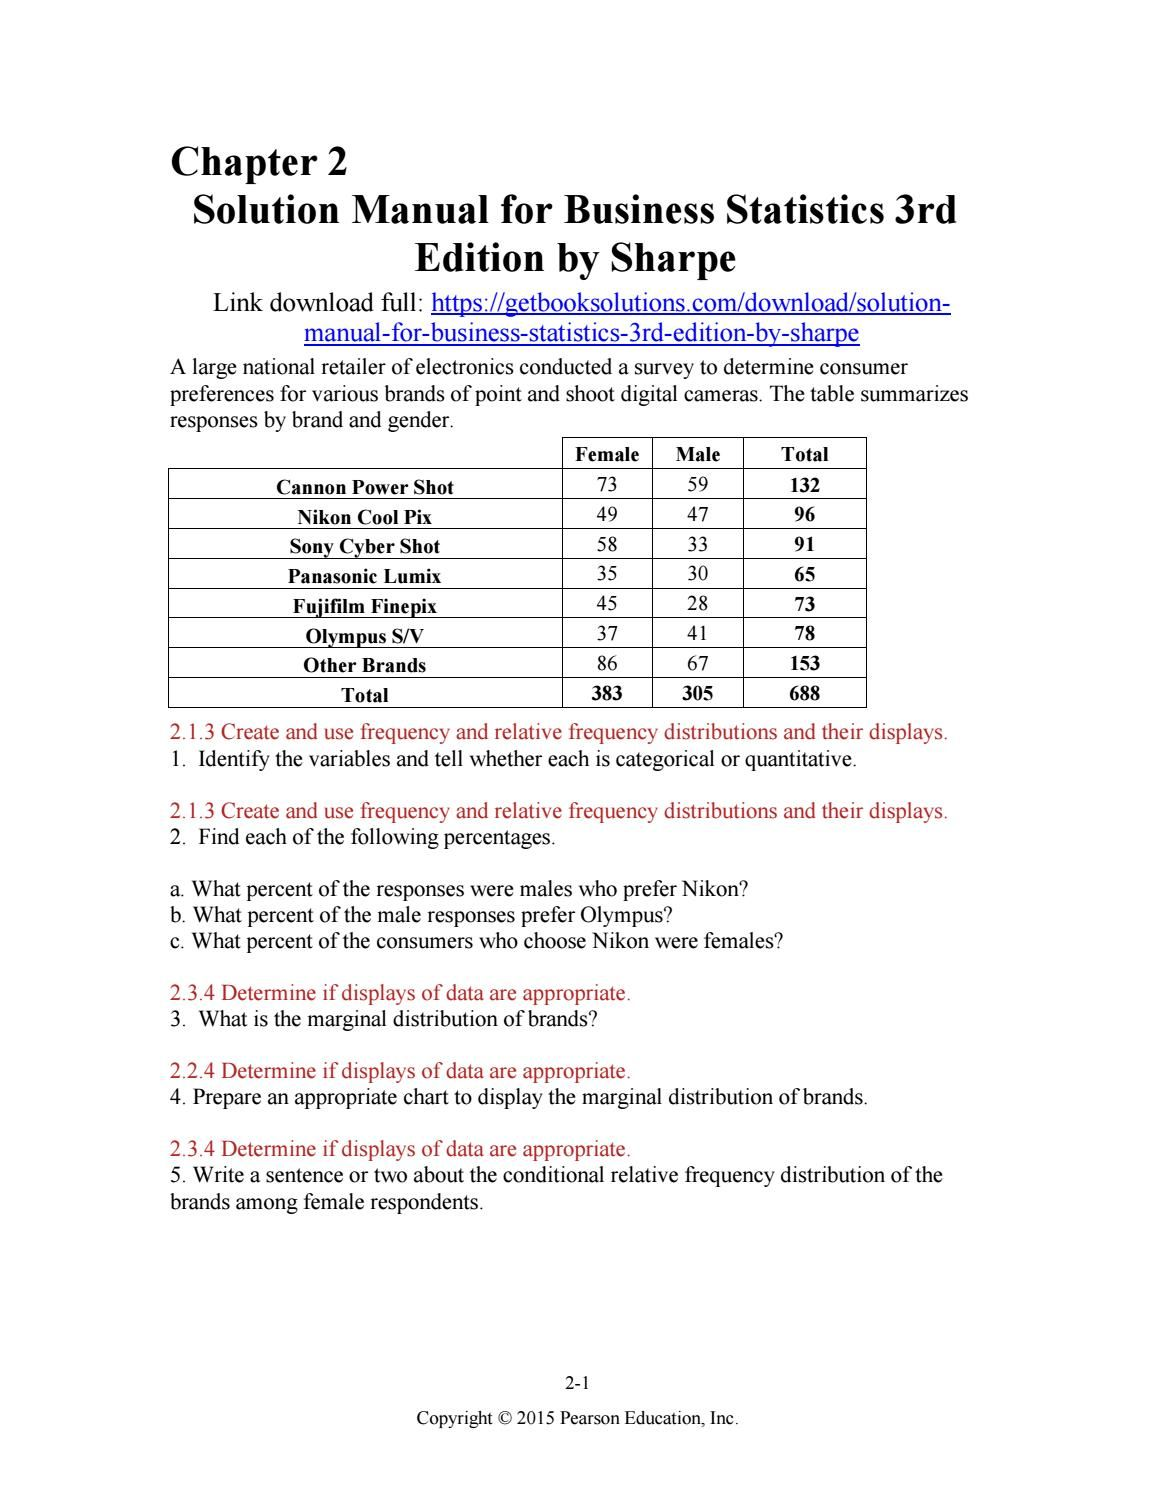 Solution manual for business statistics 3rd edition by sharpe